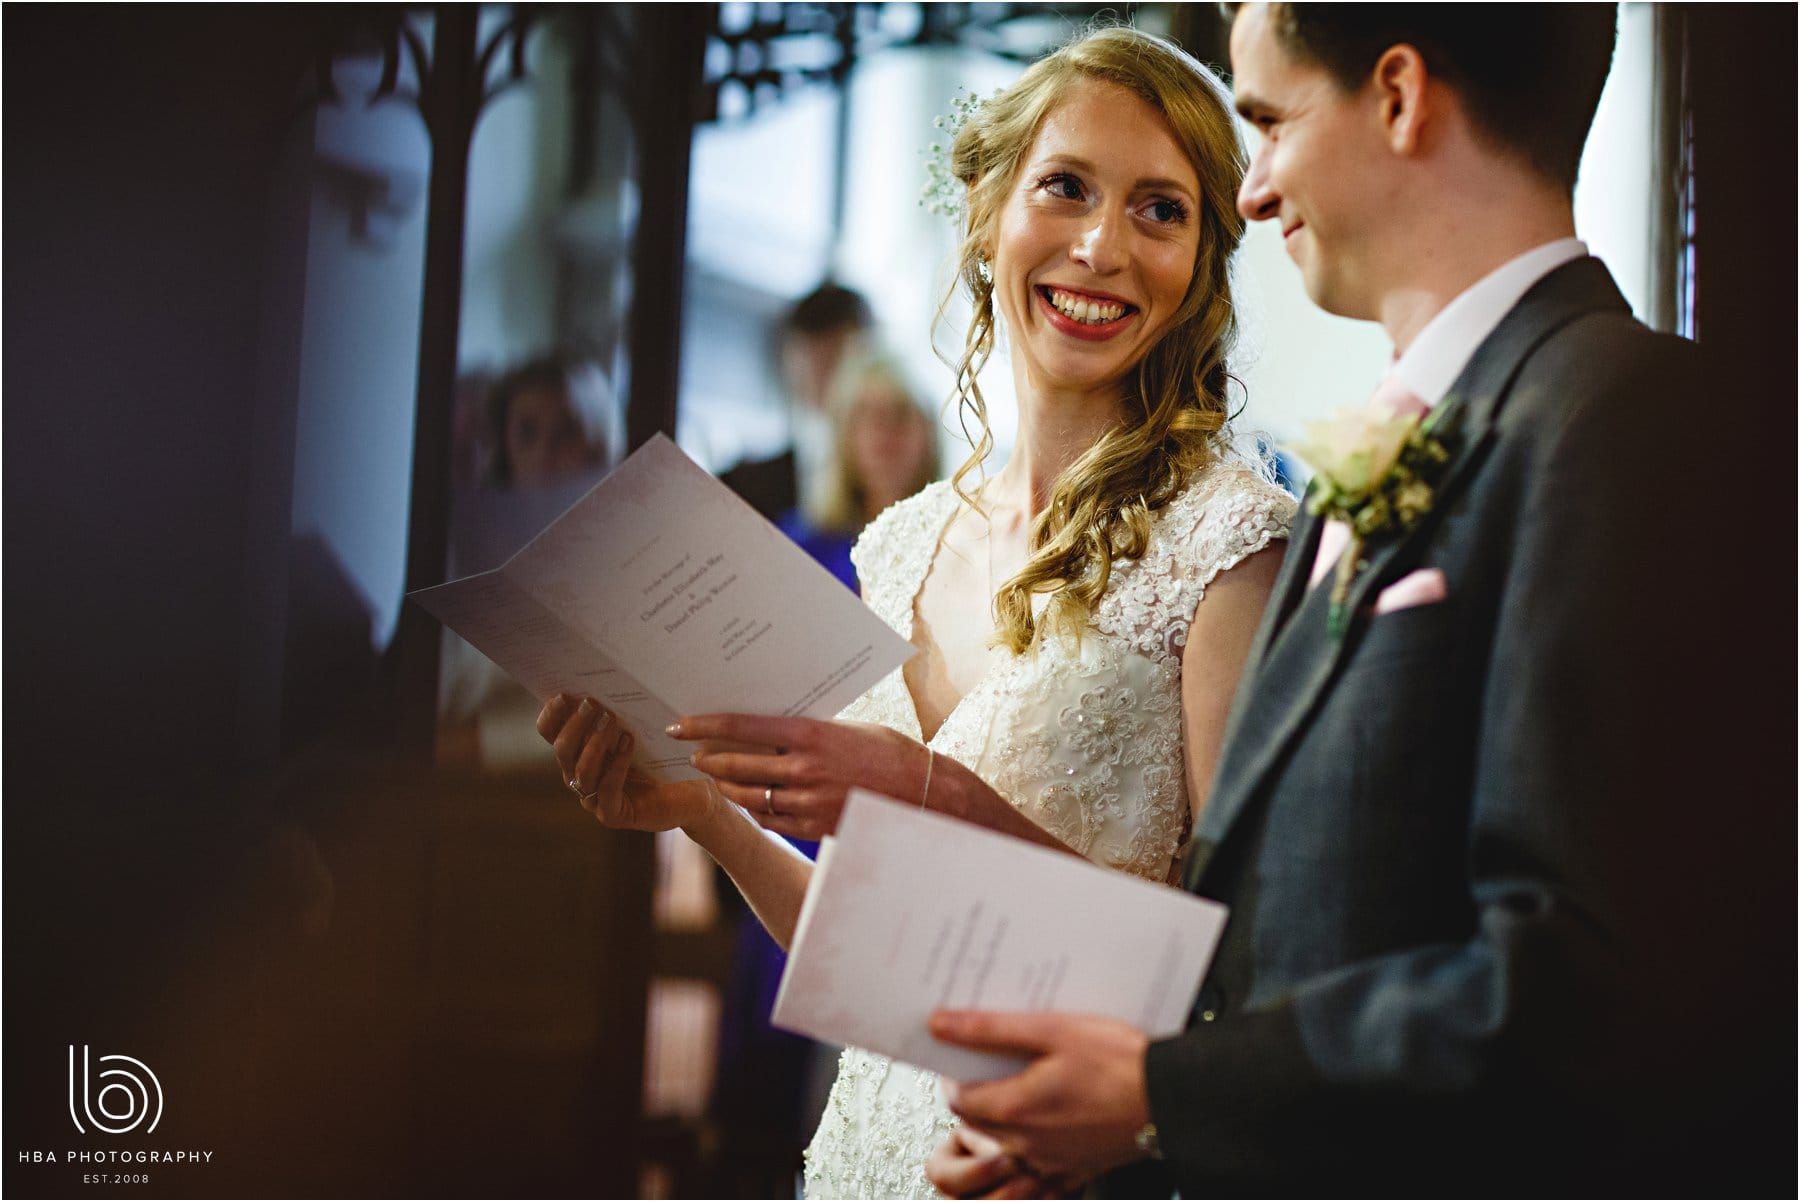 The bride smiling during the ceremony